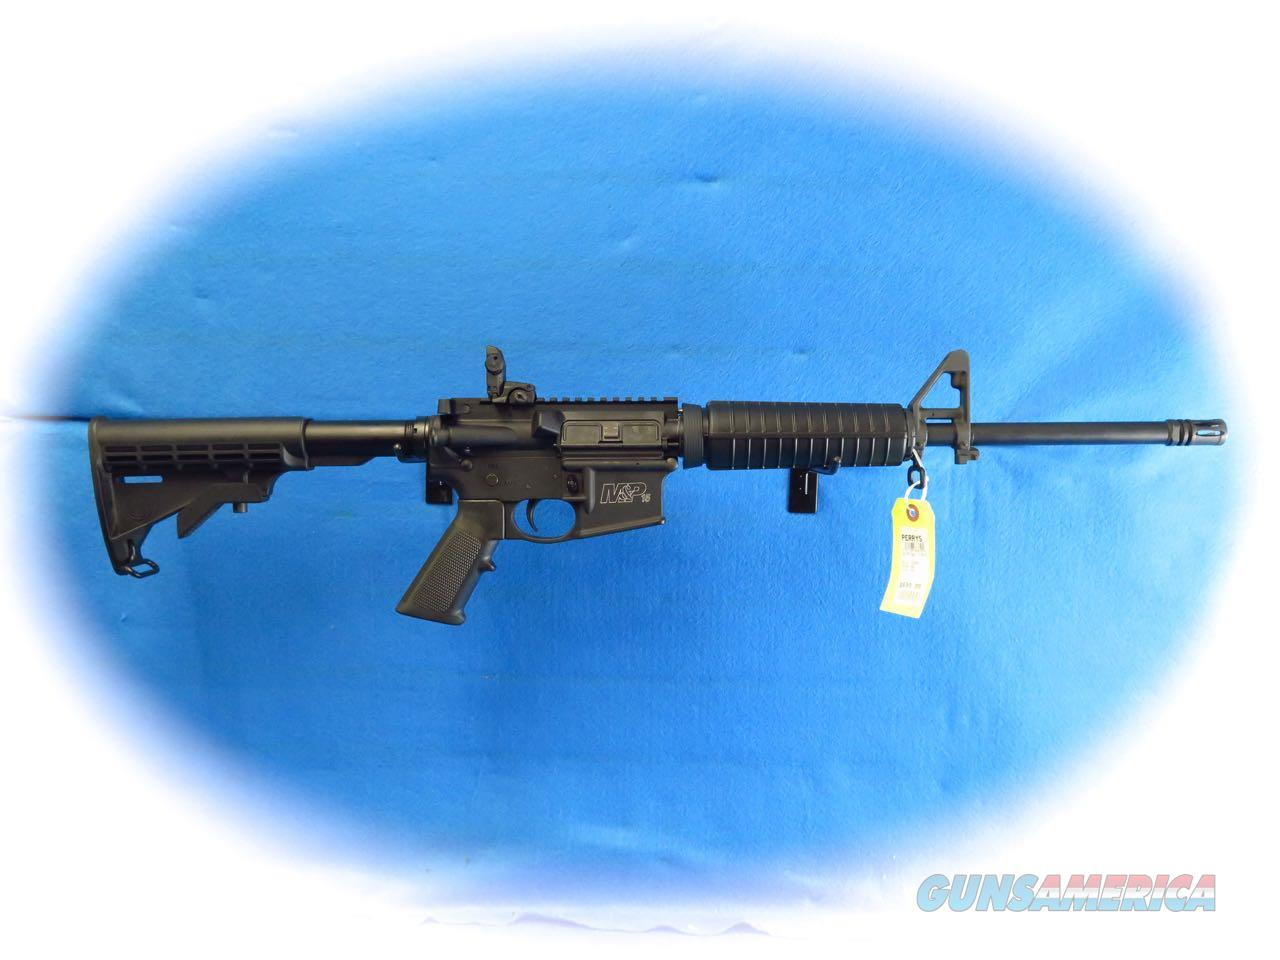 Smith & Wesson M&P15 Sport II 5.56MM Semi Auto Rifle Model 10202 **New**  Guns > Rifles > Smith & Wesson Rifles > M&P